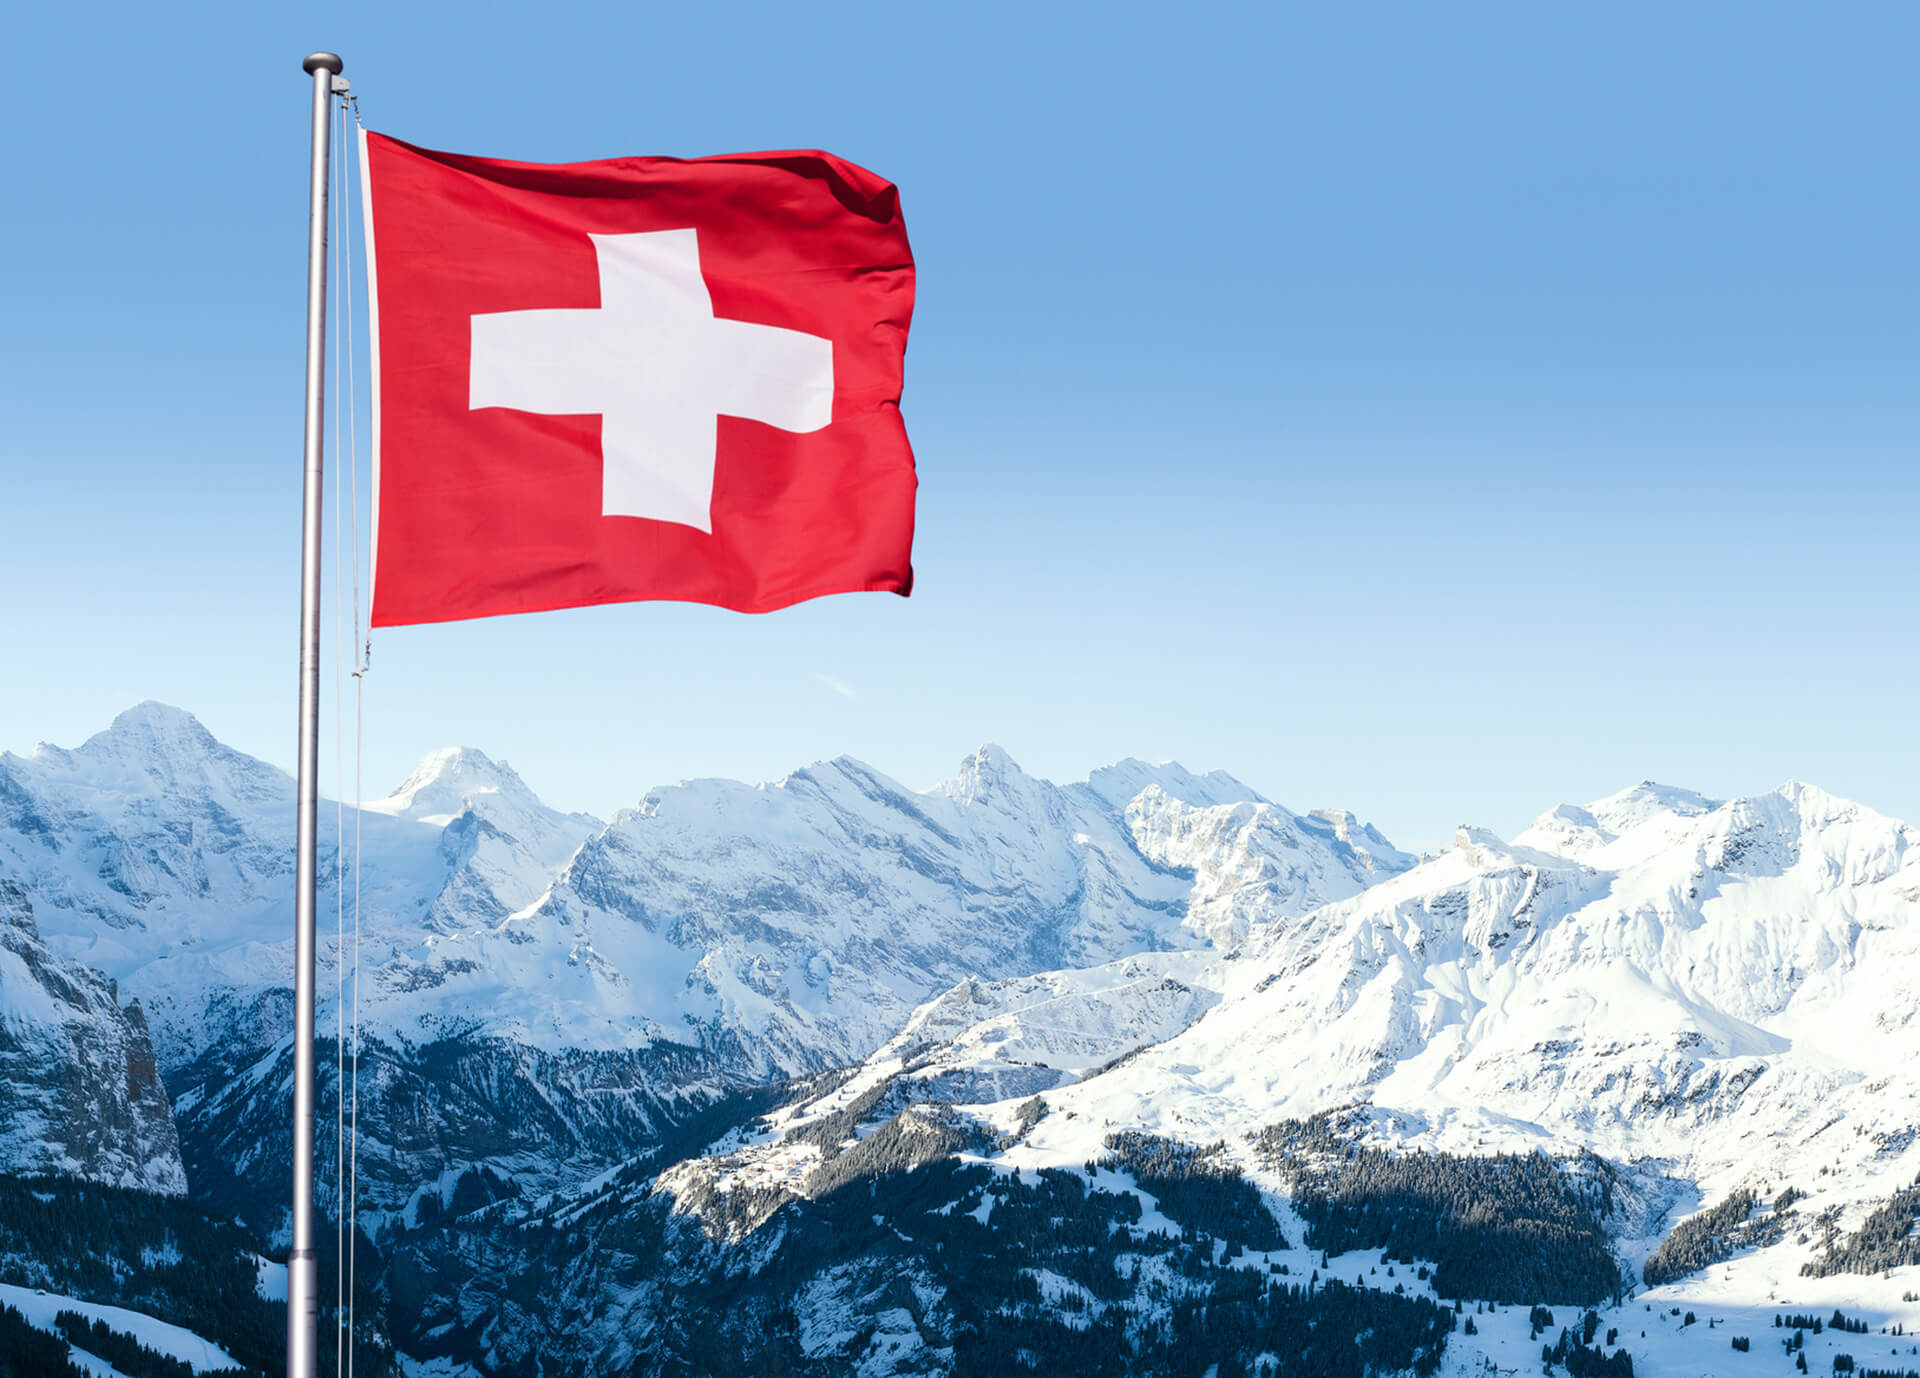 View over snowy Swiss mountains with swiss flag in foreground.